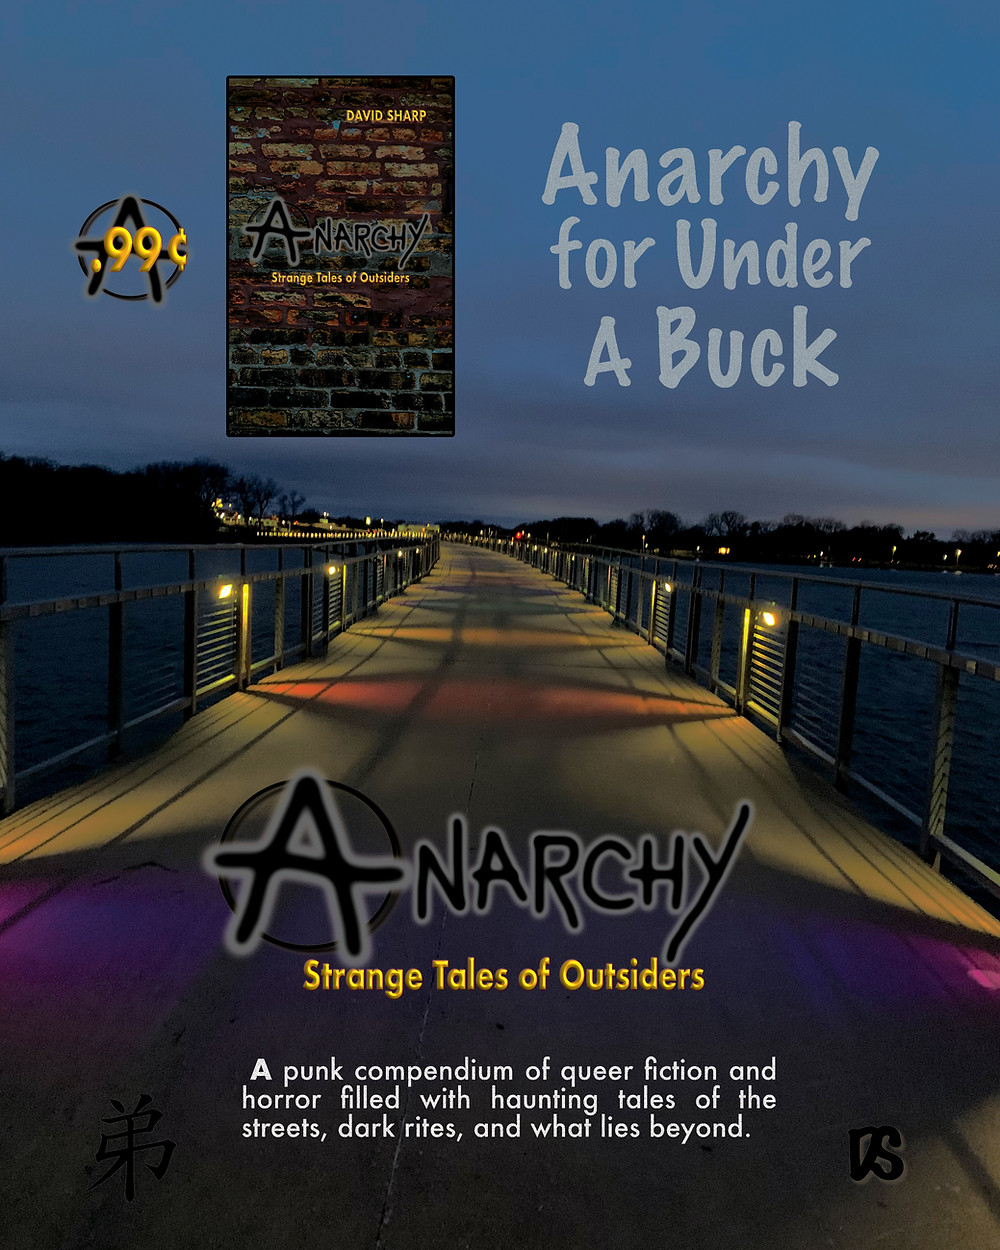 Anarchy - Strange Tales of Outsiders